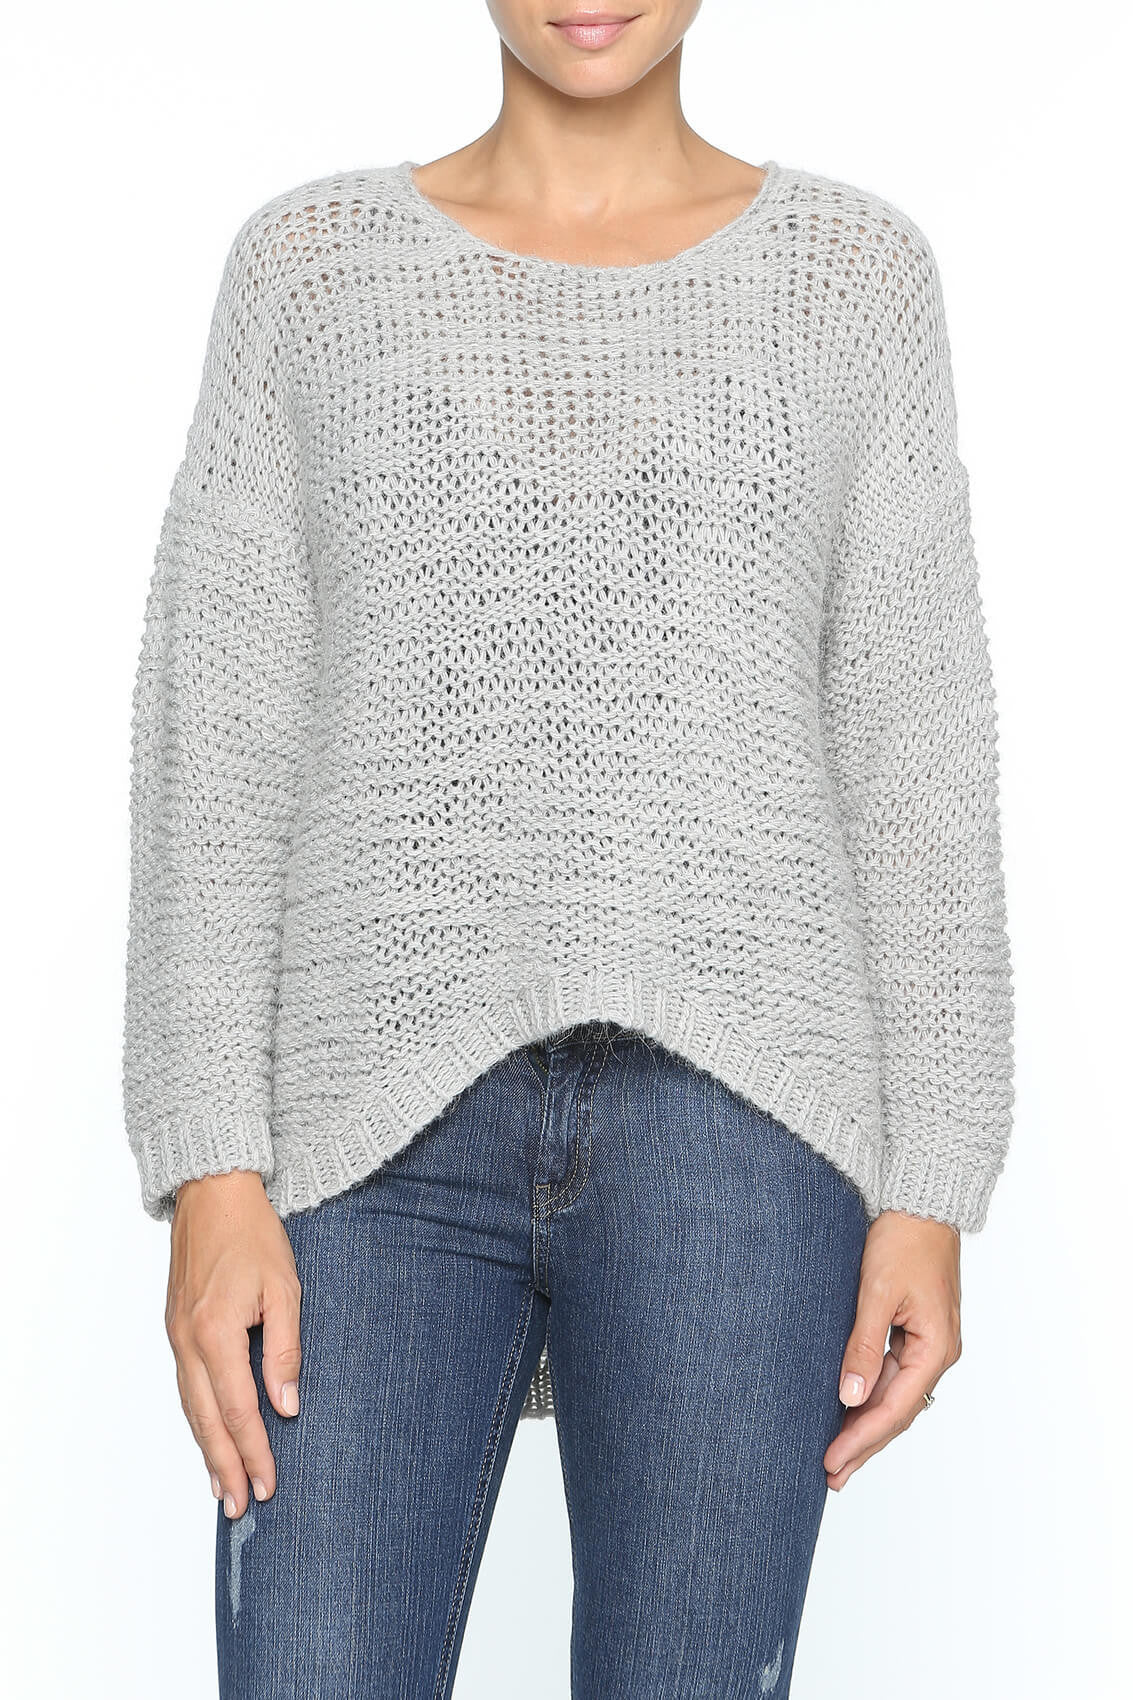 Moda Immagine Round Neck Knit